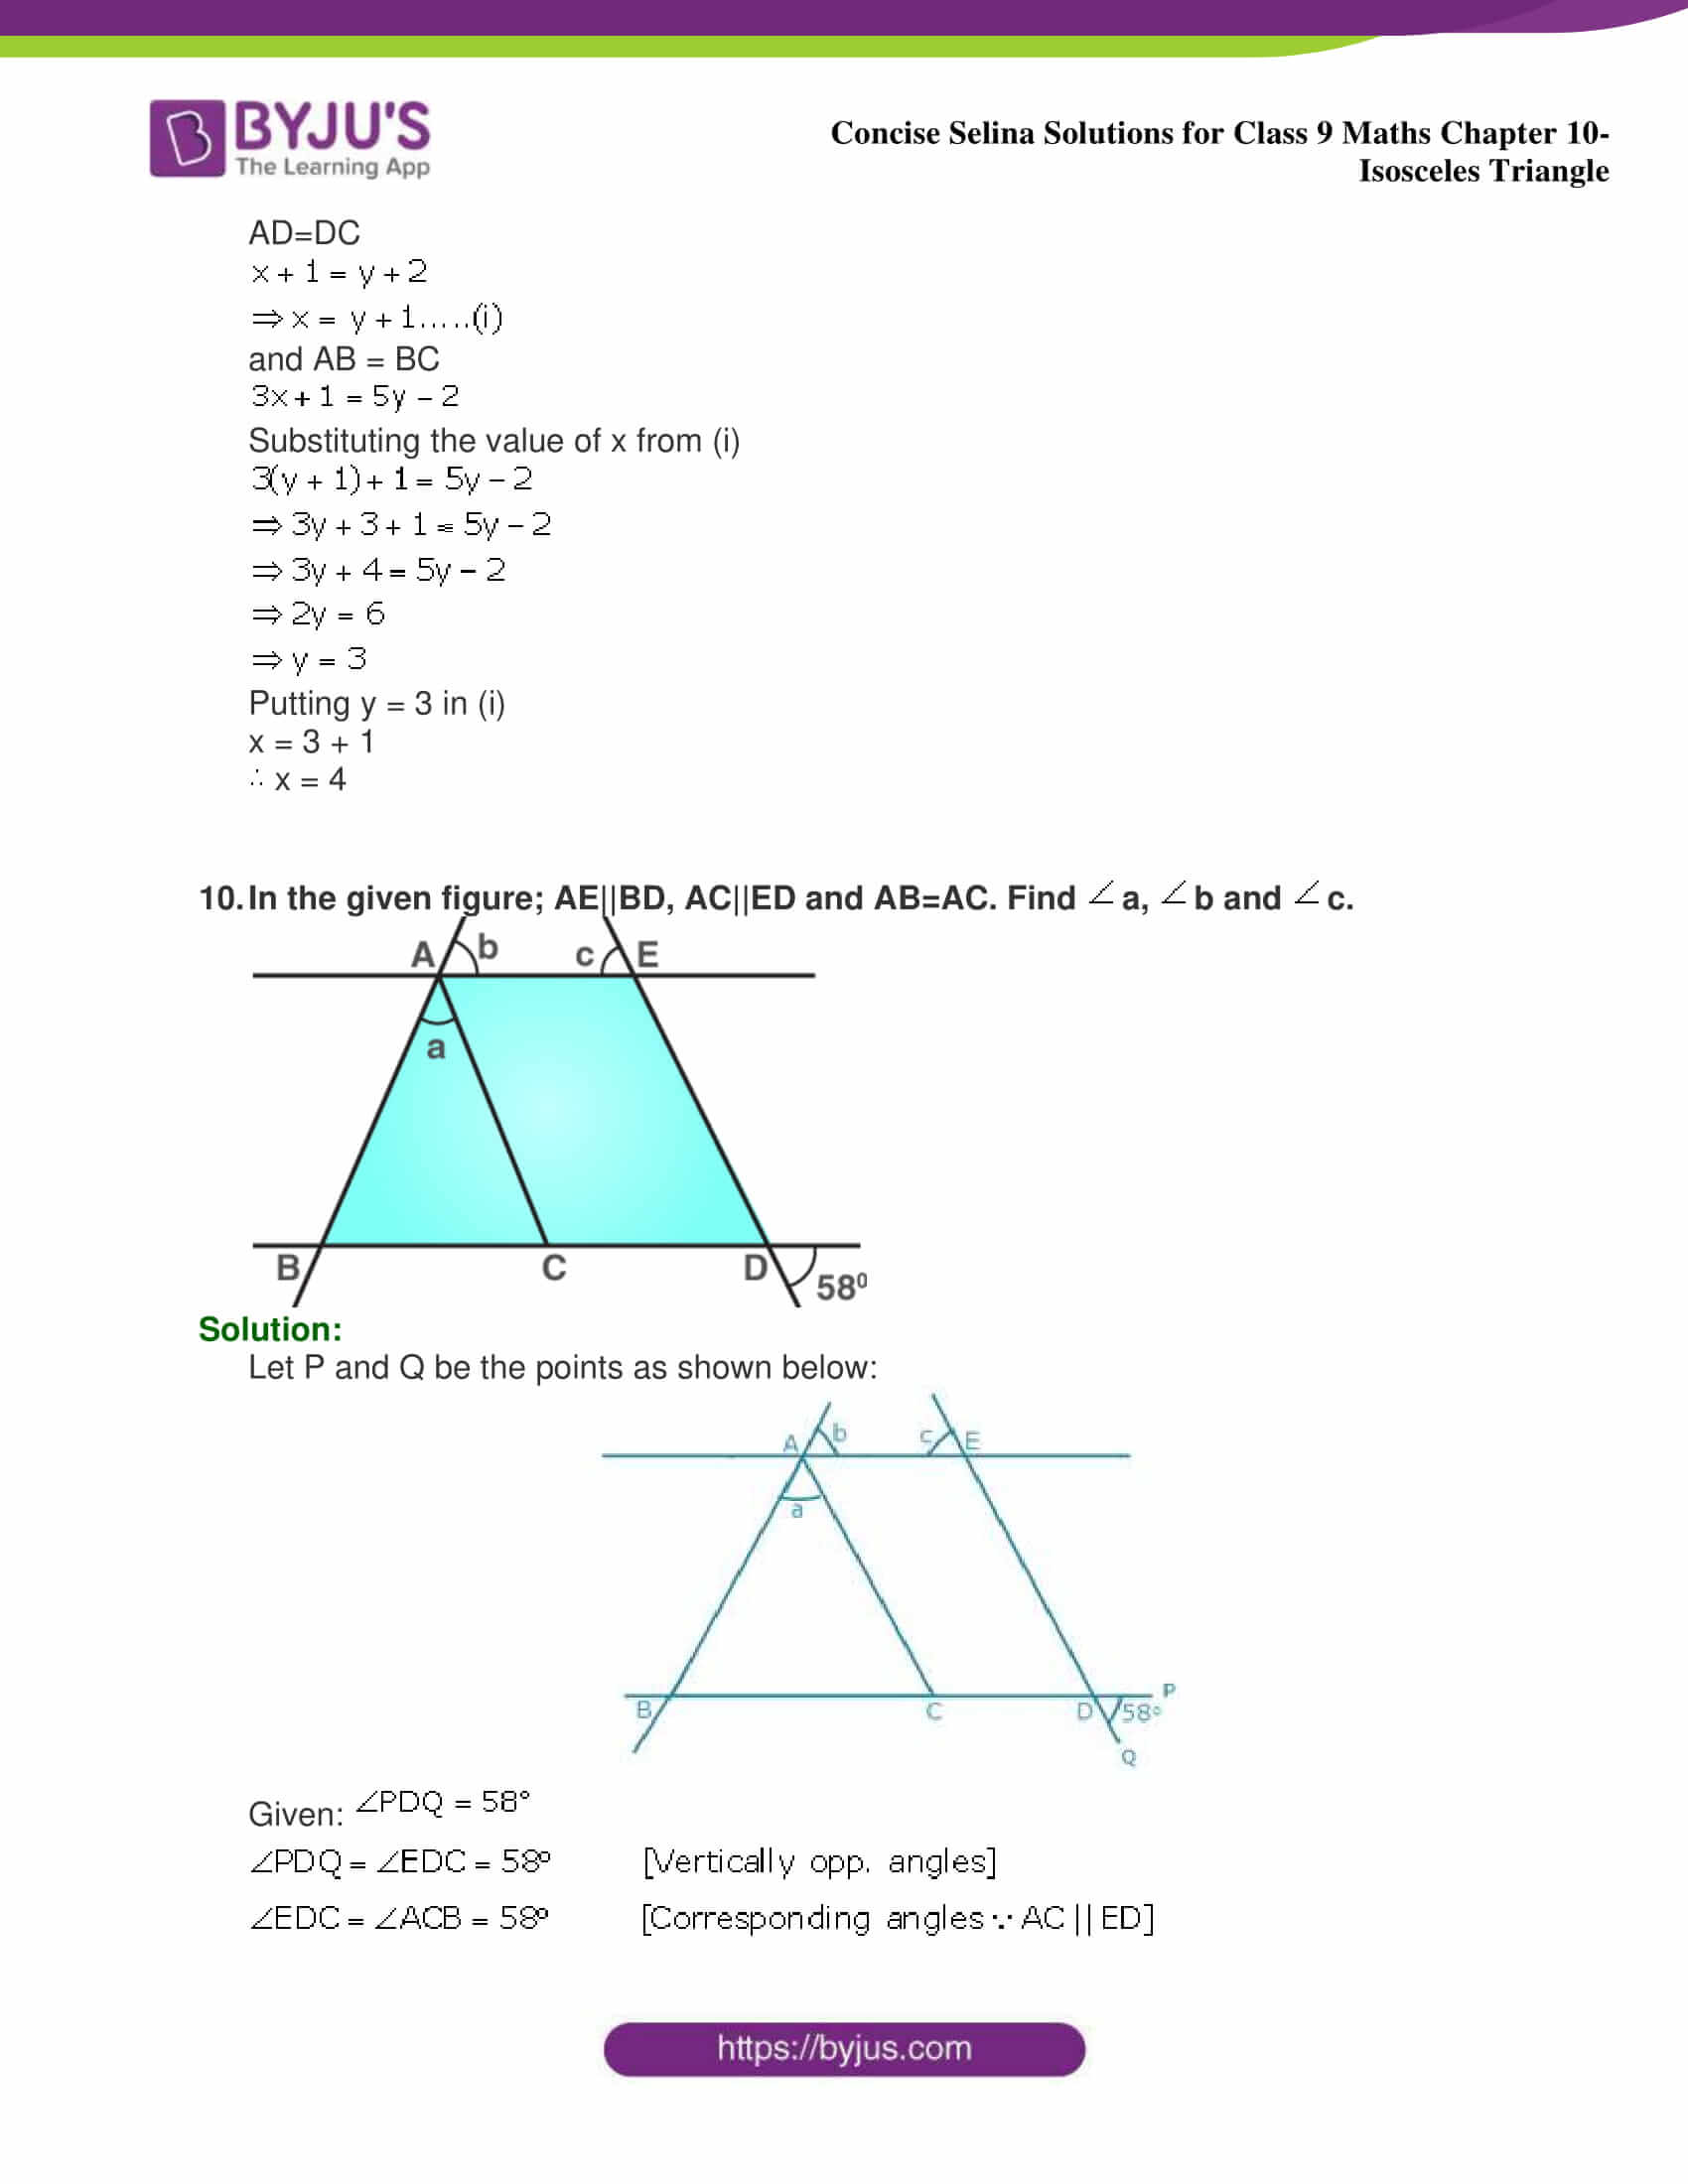 selina Solutions for Class 9 Maths Chapter 10 part 11